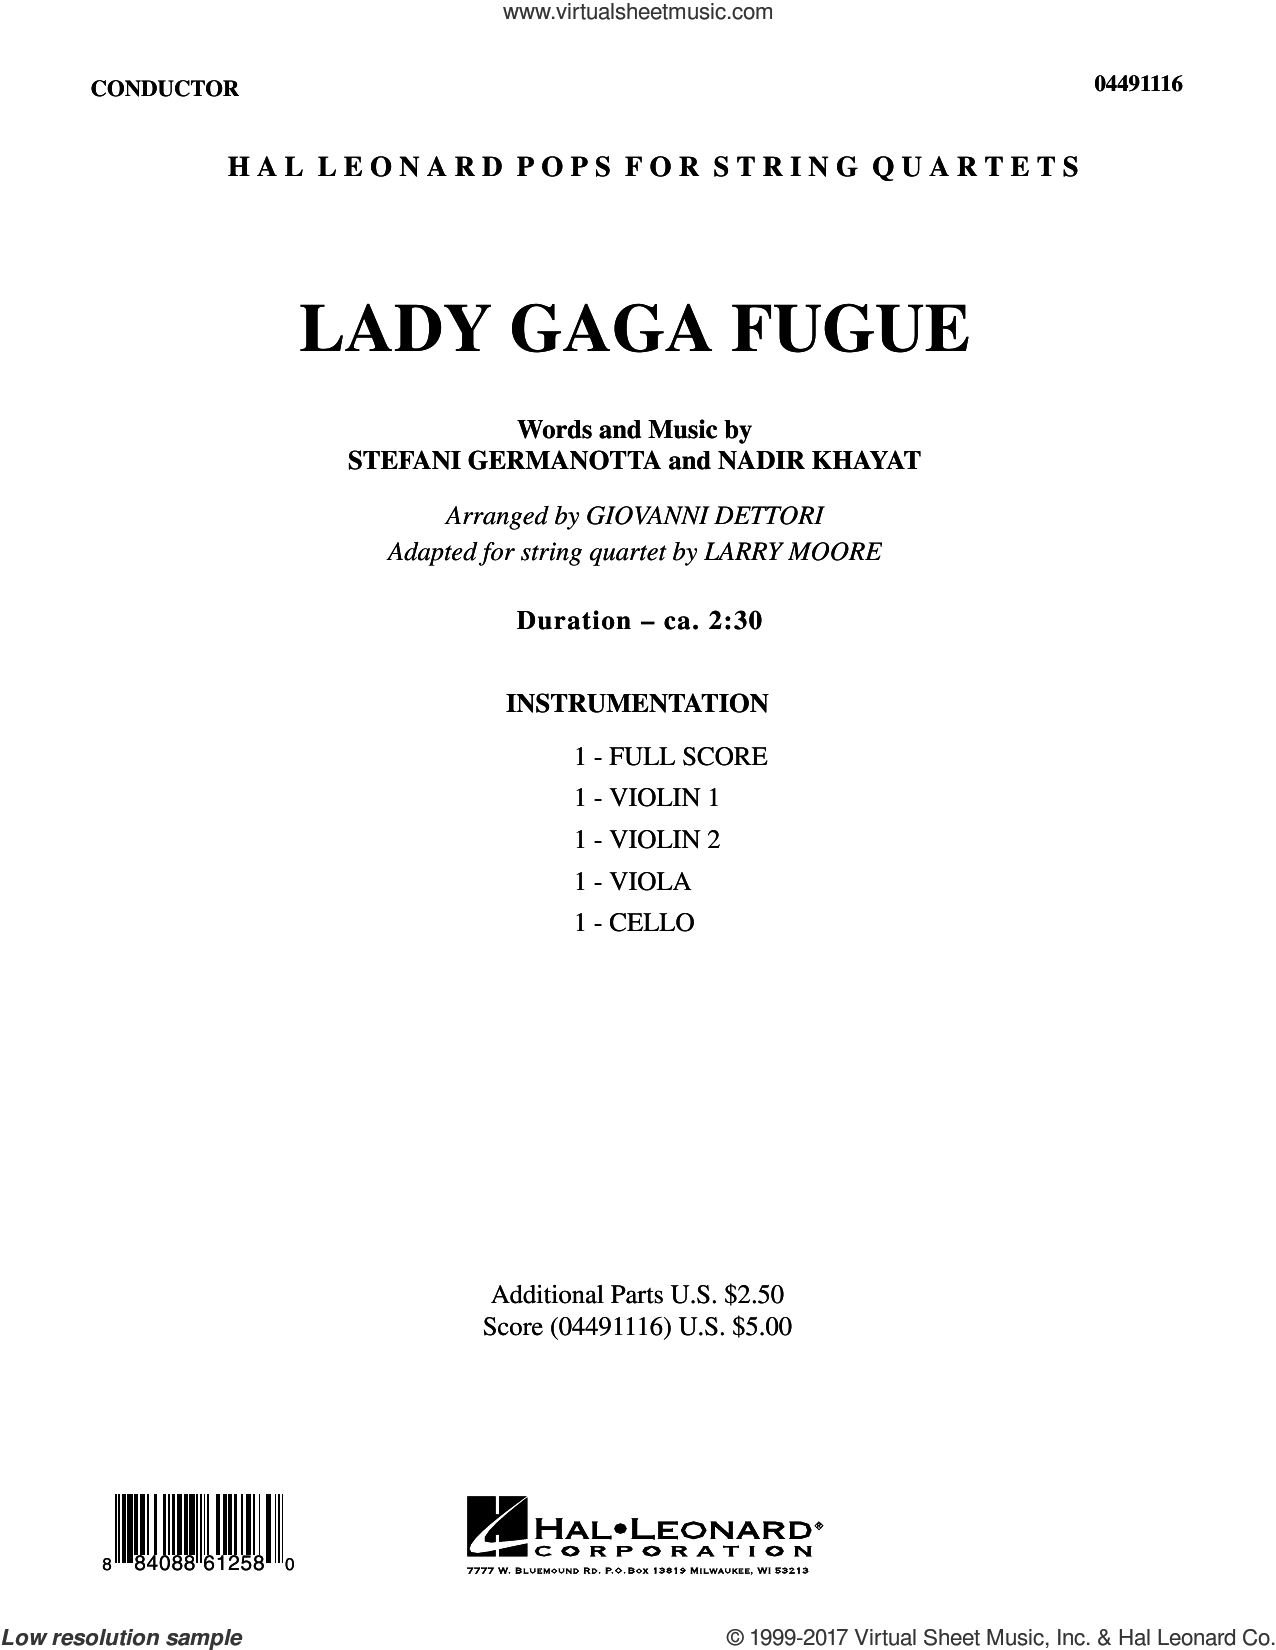 Lady Gaga Fugue (COMPLETE) sheet music for orchestra by Lady Gaga, Larry Moore and Nadir Khayat, intermediate